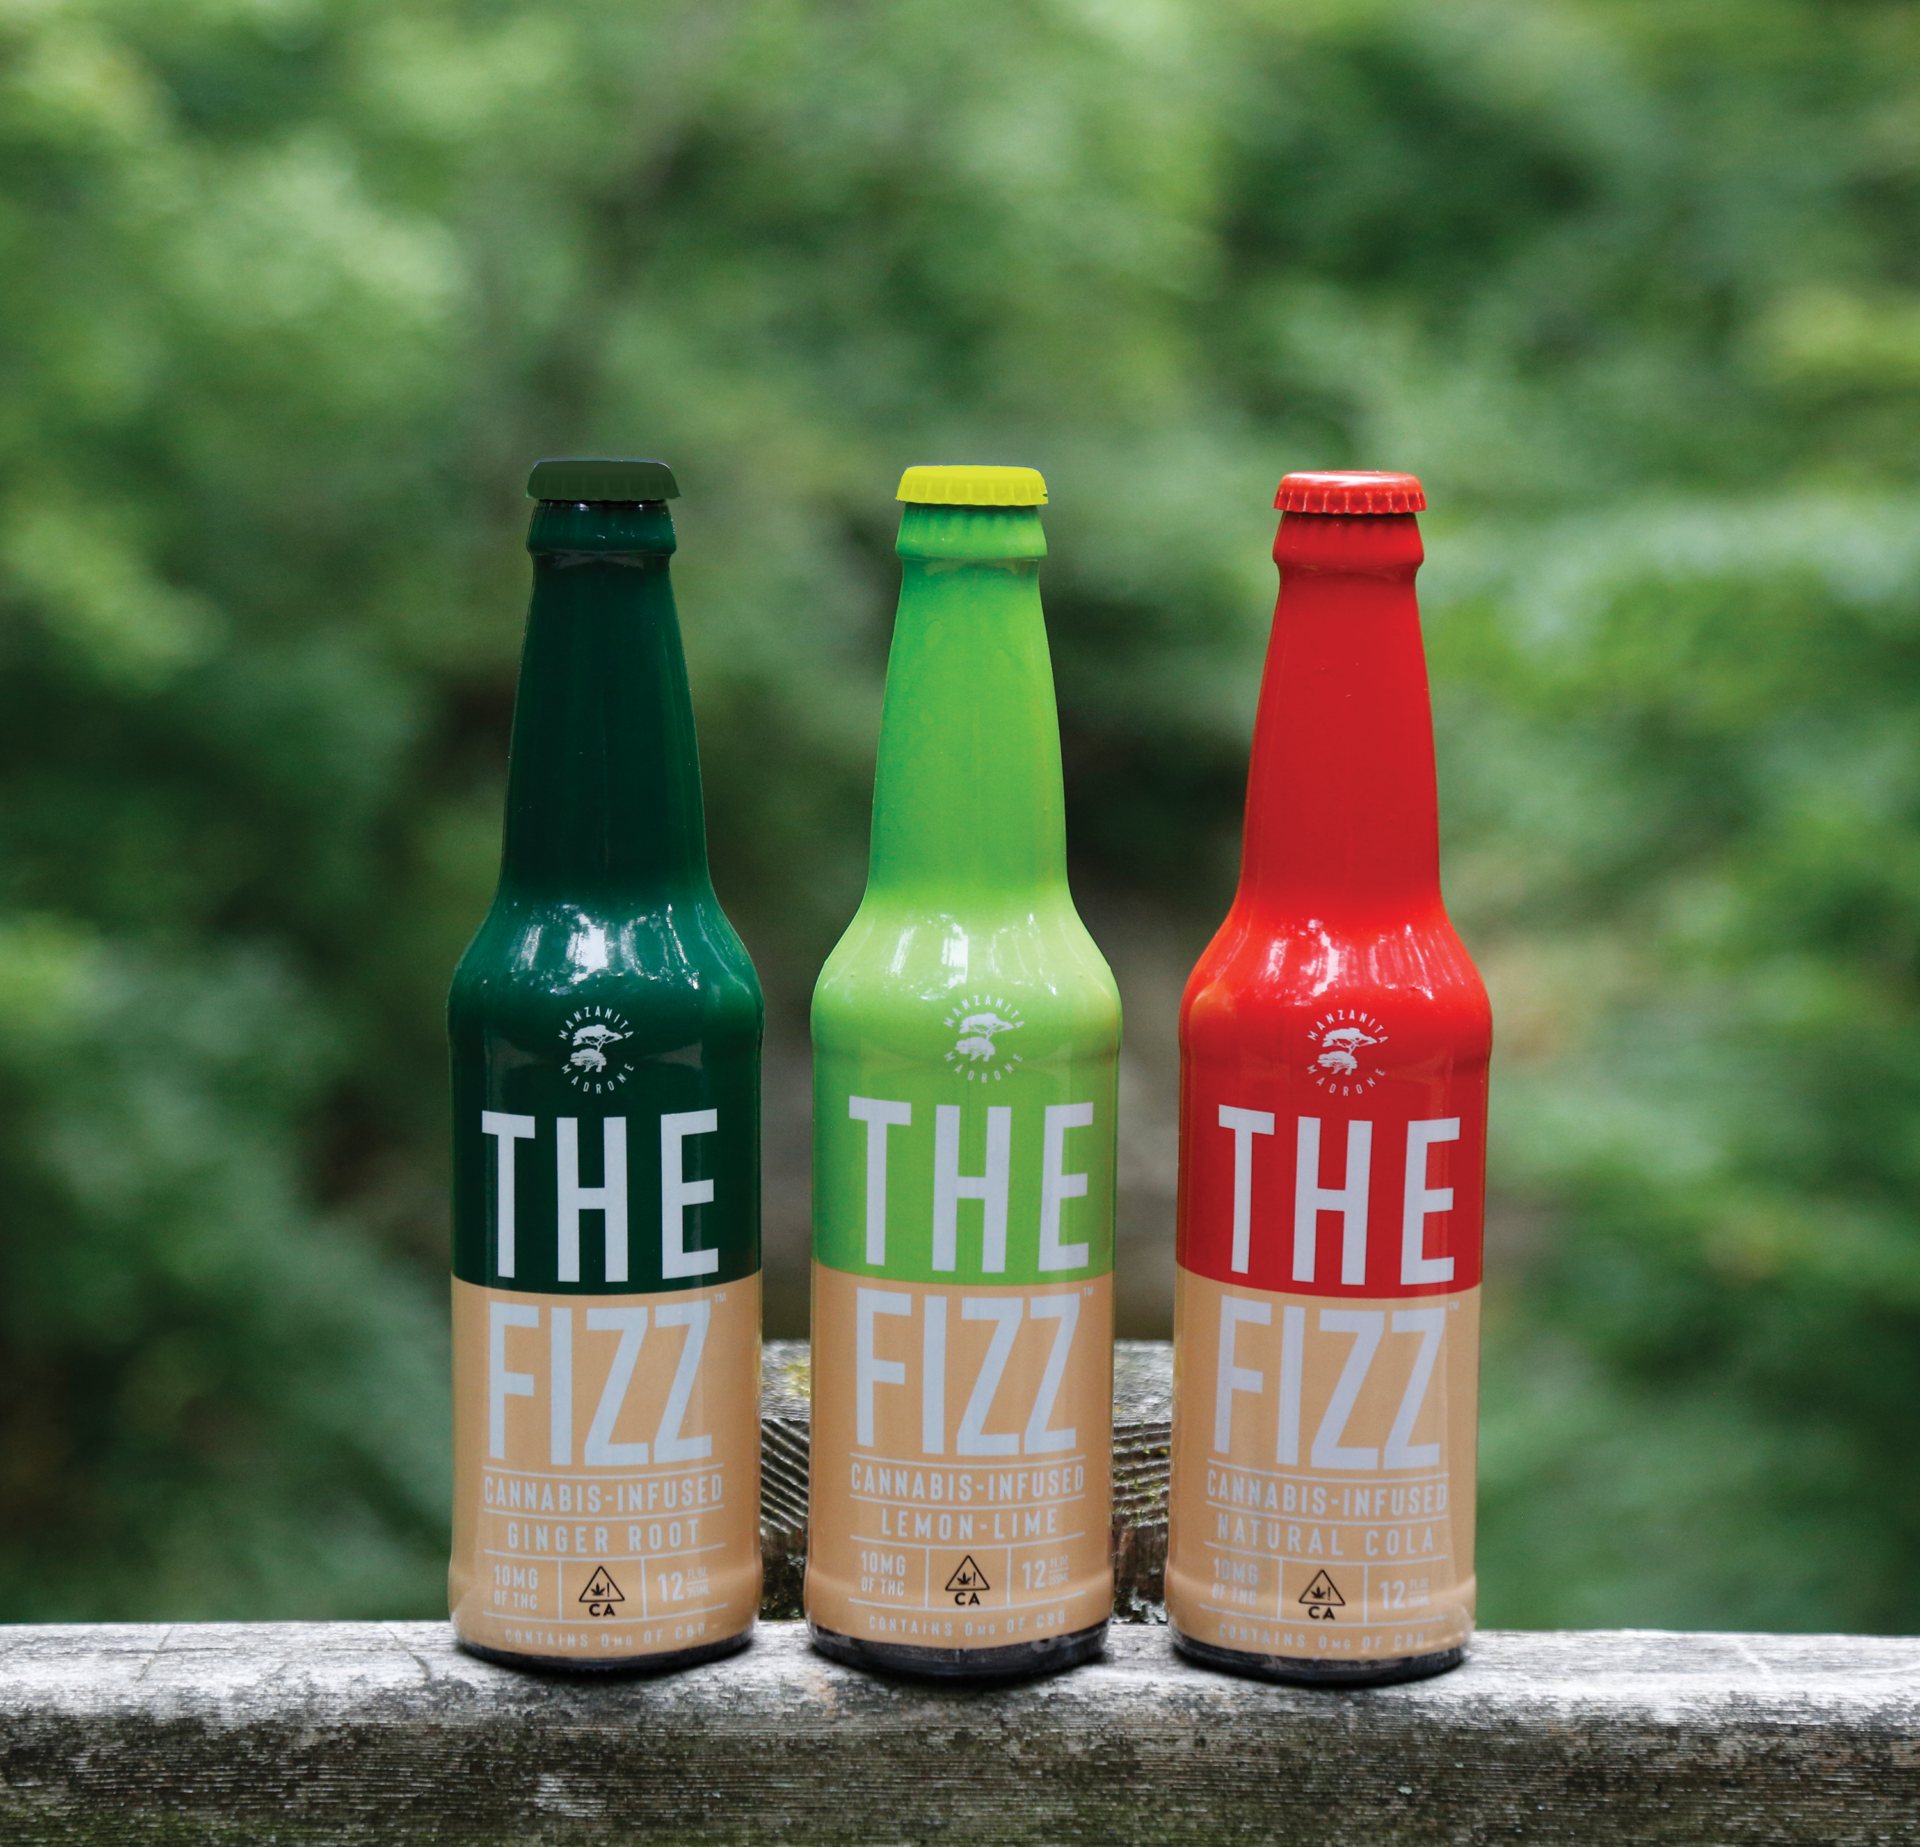 The three THC-infused flavors of The Fizz from Manzanita and Madrone.